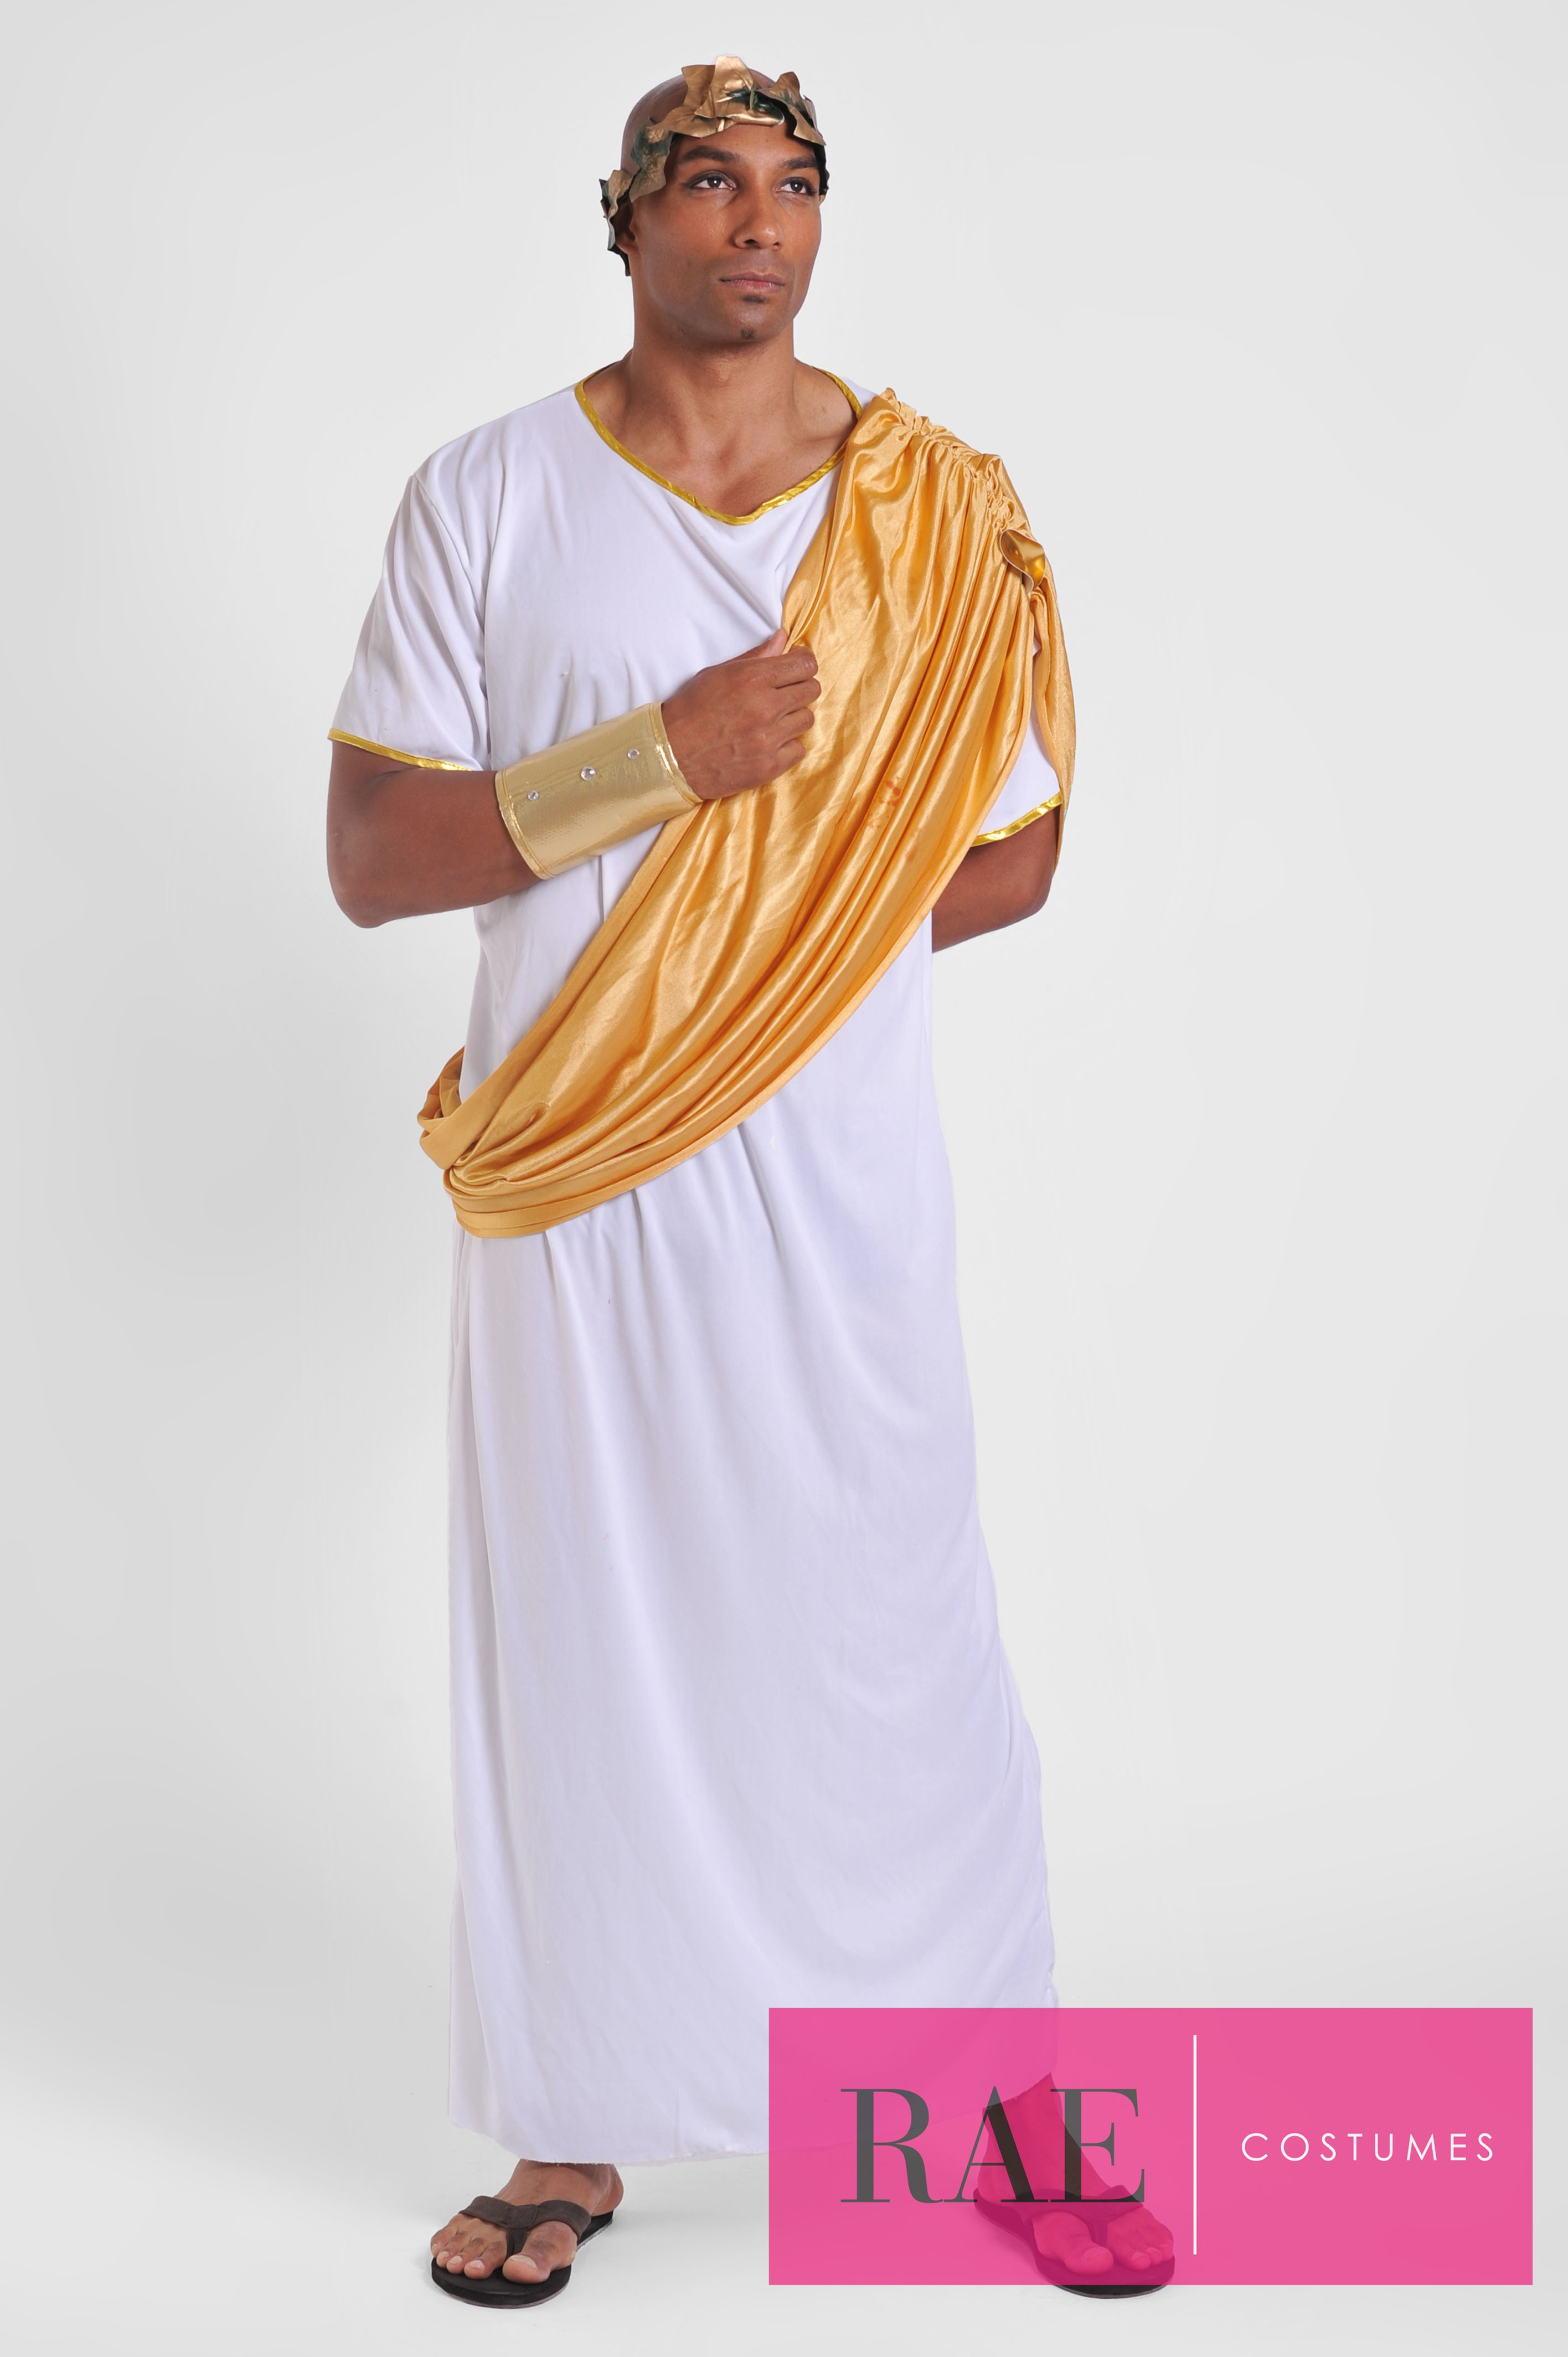 100c596fc94 Dress like a king with this Roman King costume! (Quantity 1) Costume  Includes: Toga w/ Sash, Headpiece, Gold Cuff - More info: raecostumes.com |  415-678- ...